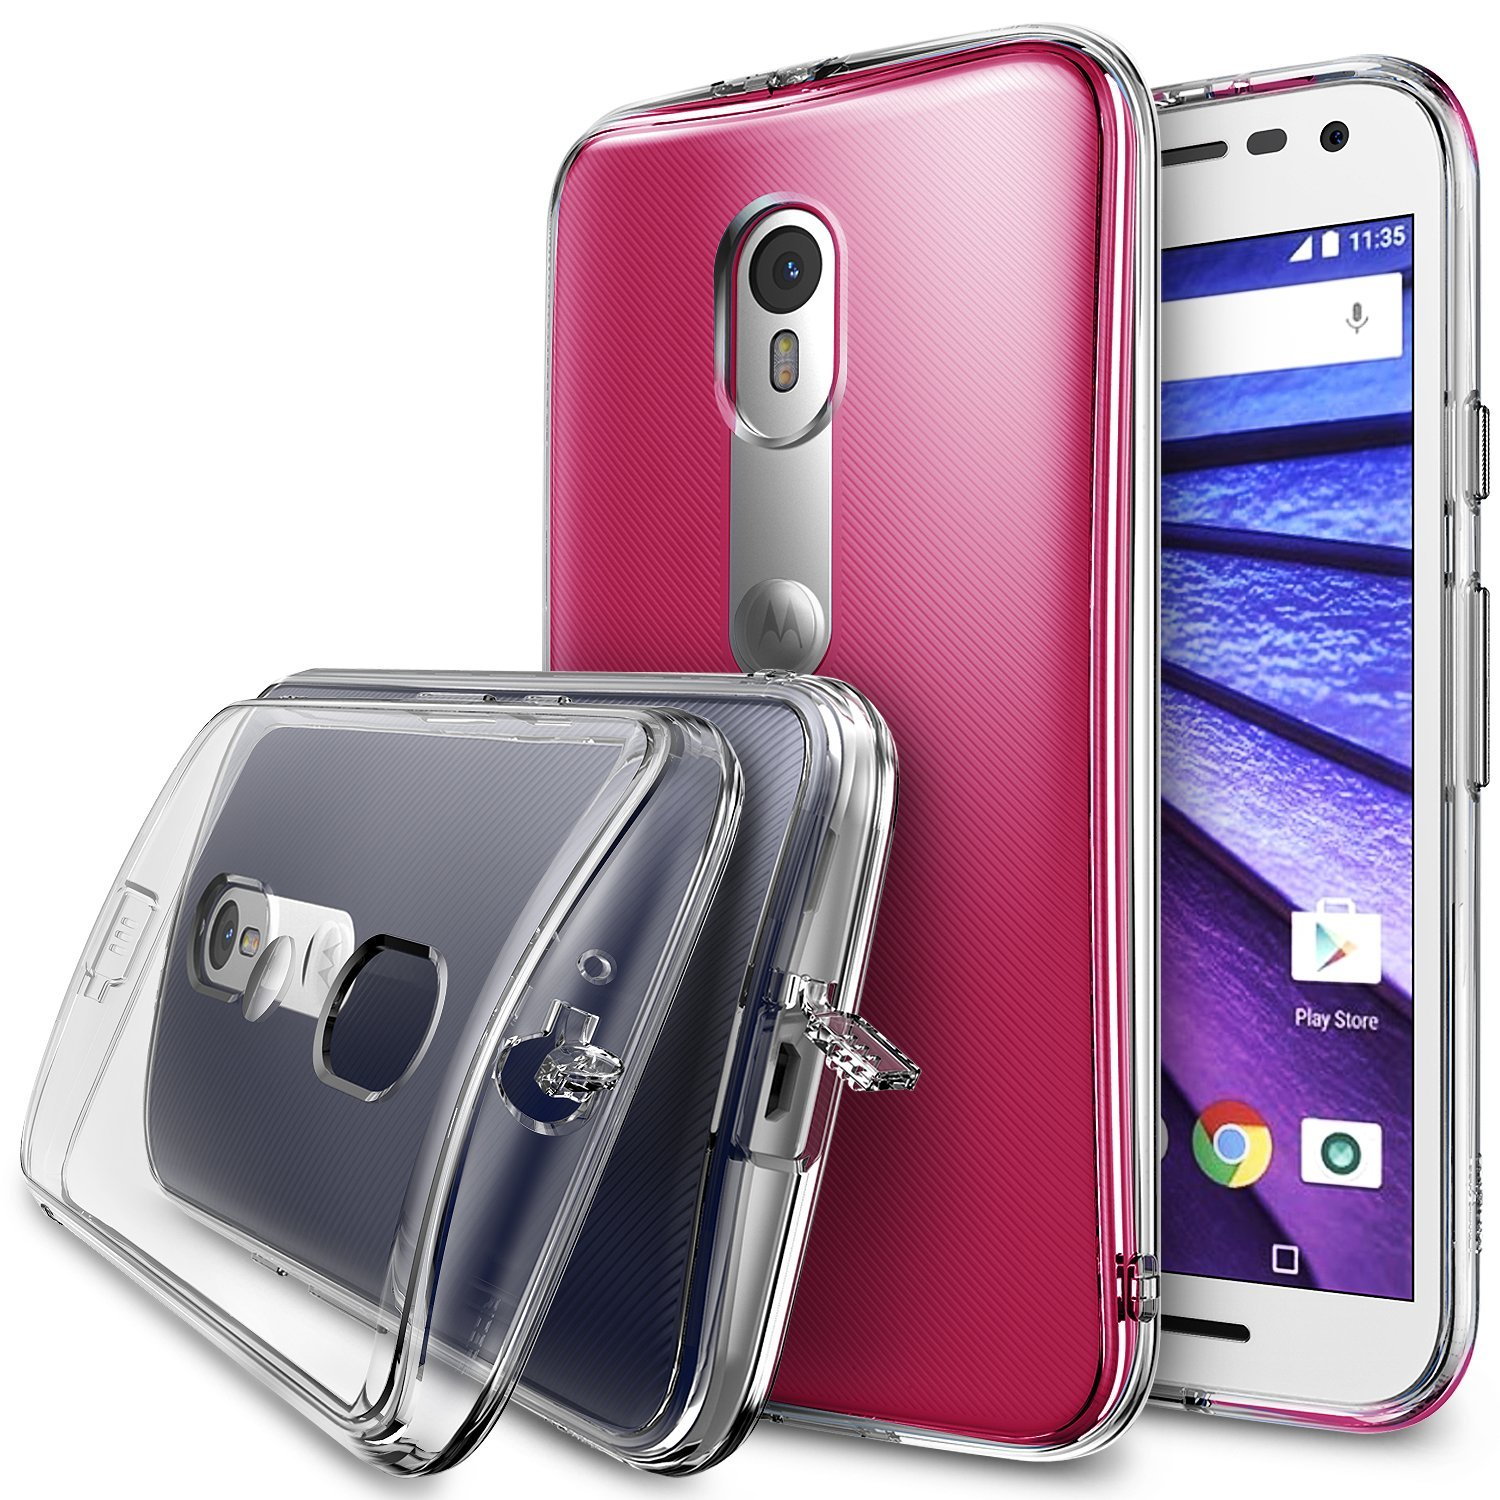 Moto G 3rd Gen 2015 Case, Ringke FUSION Series [Clear] Shock Absorption Premium Clear Hard Case